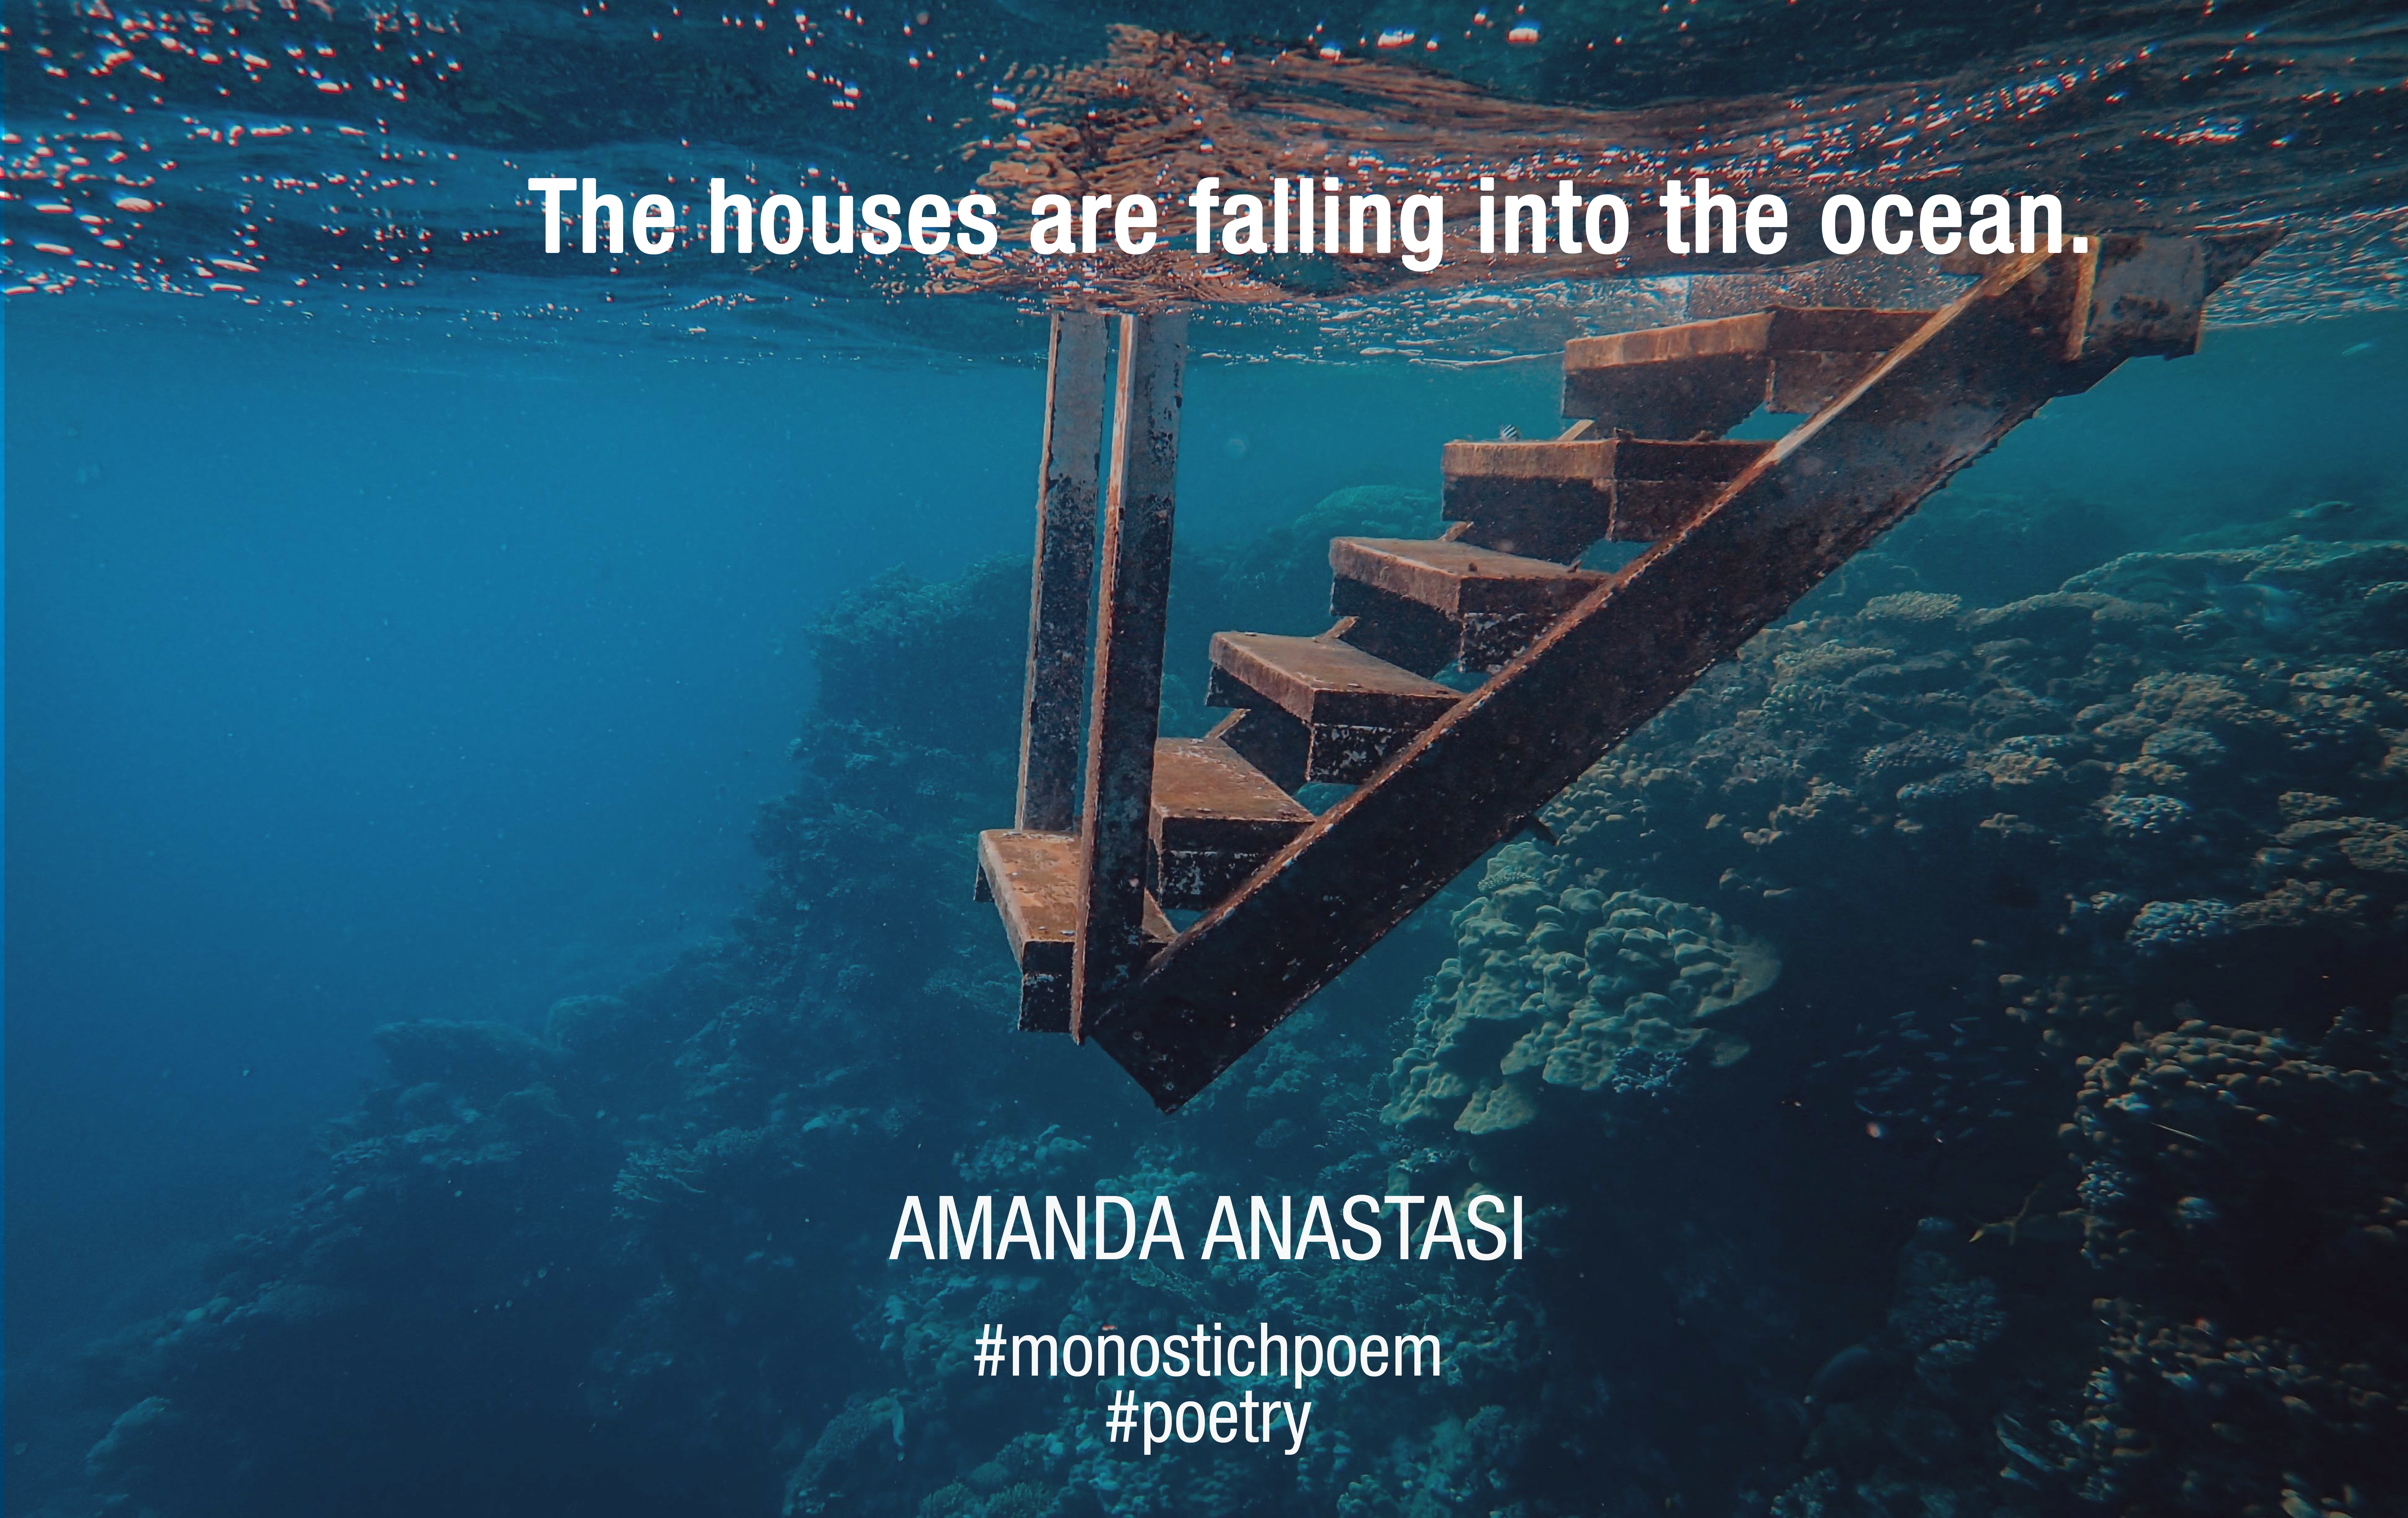 The houses are falling into the ocean.